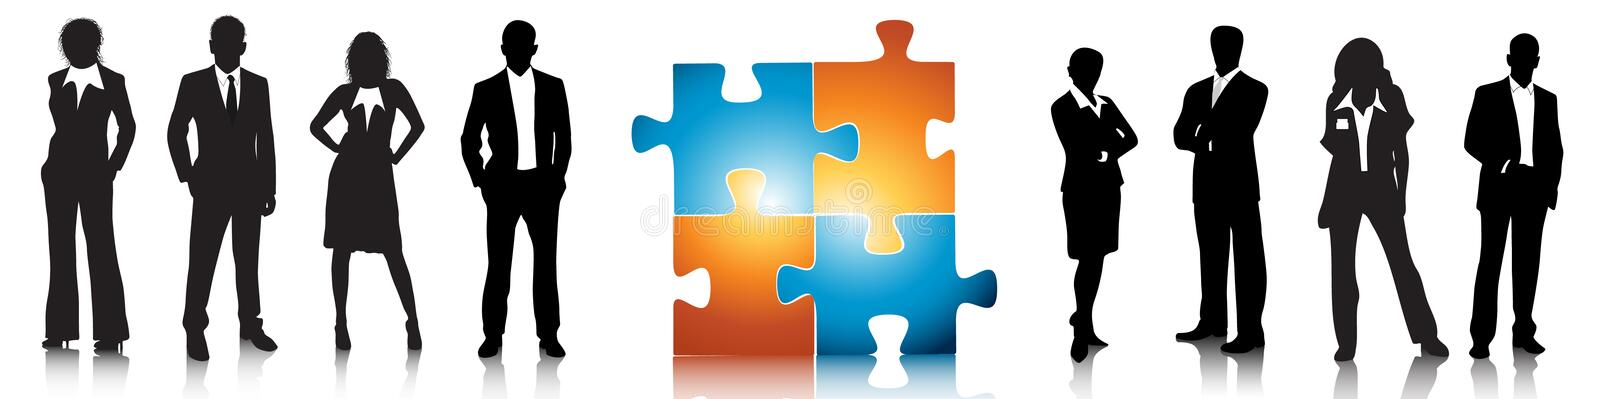 Business concept. Illustration of business people with puzzle royalty free illustration